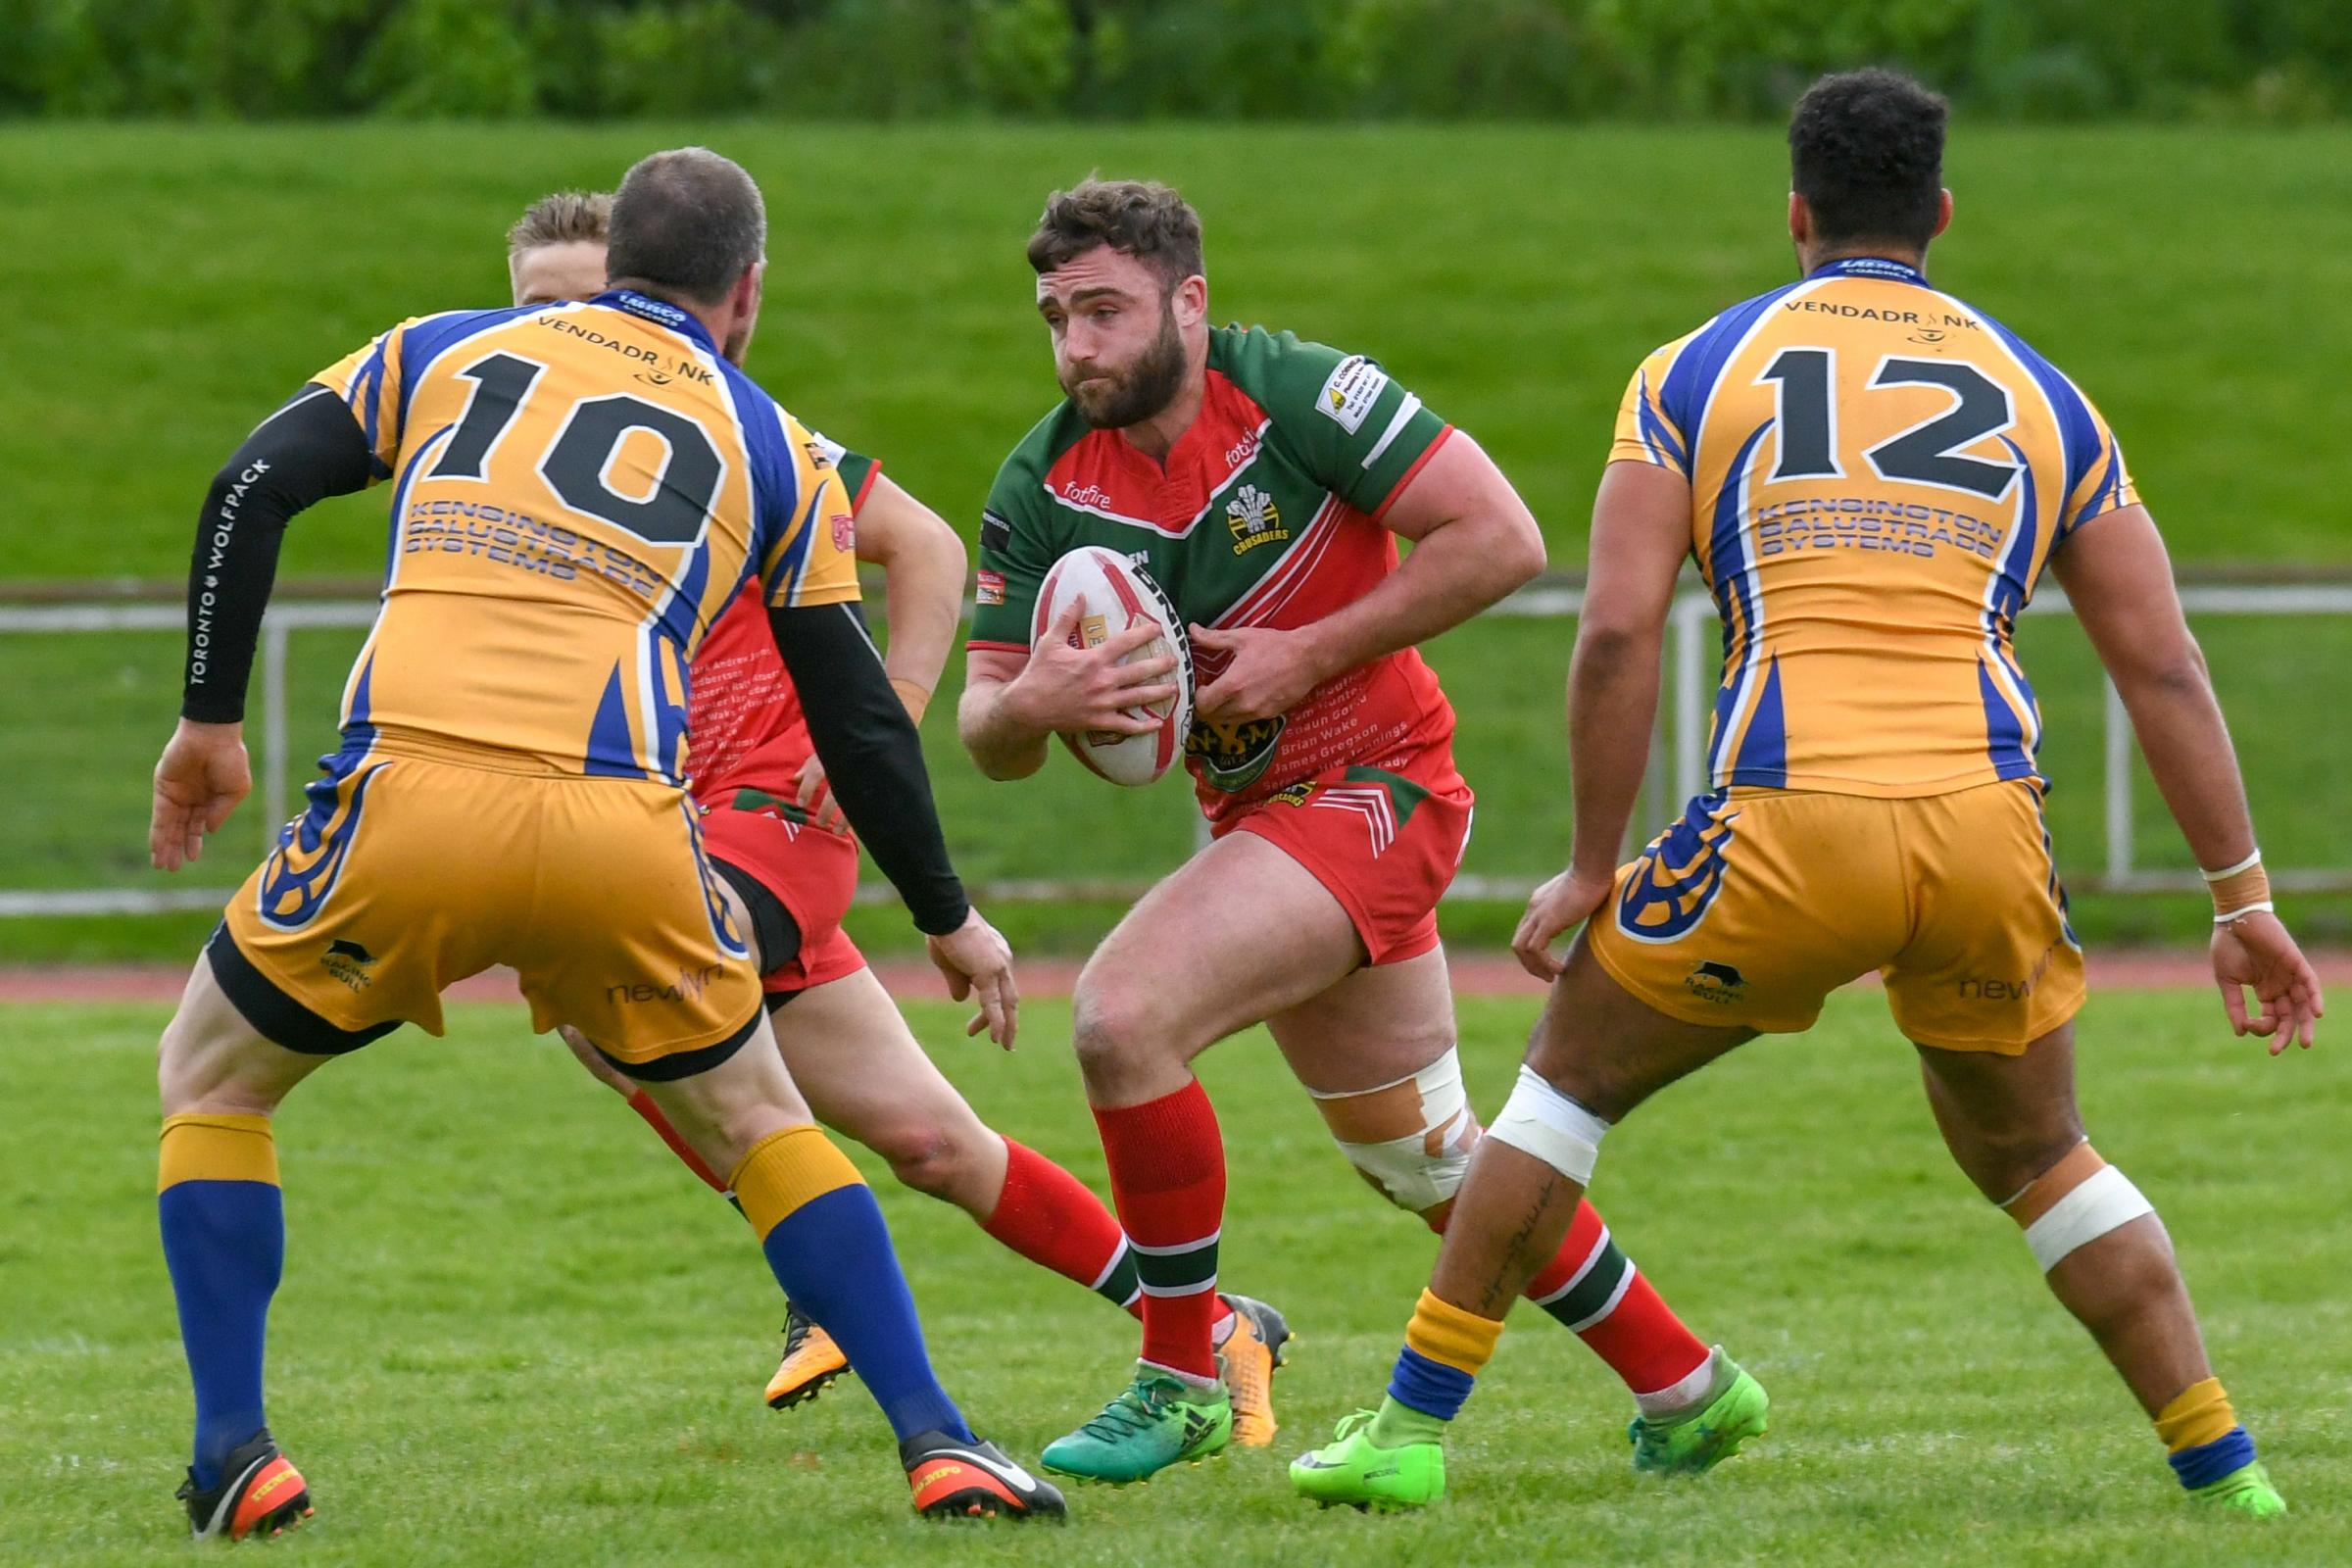 North wales Crusaders in action against Hemel Stags.